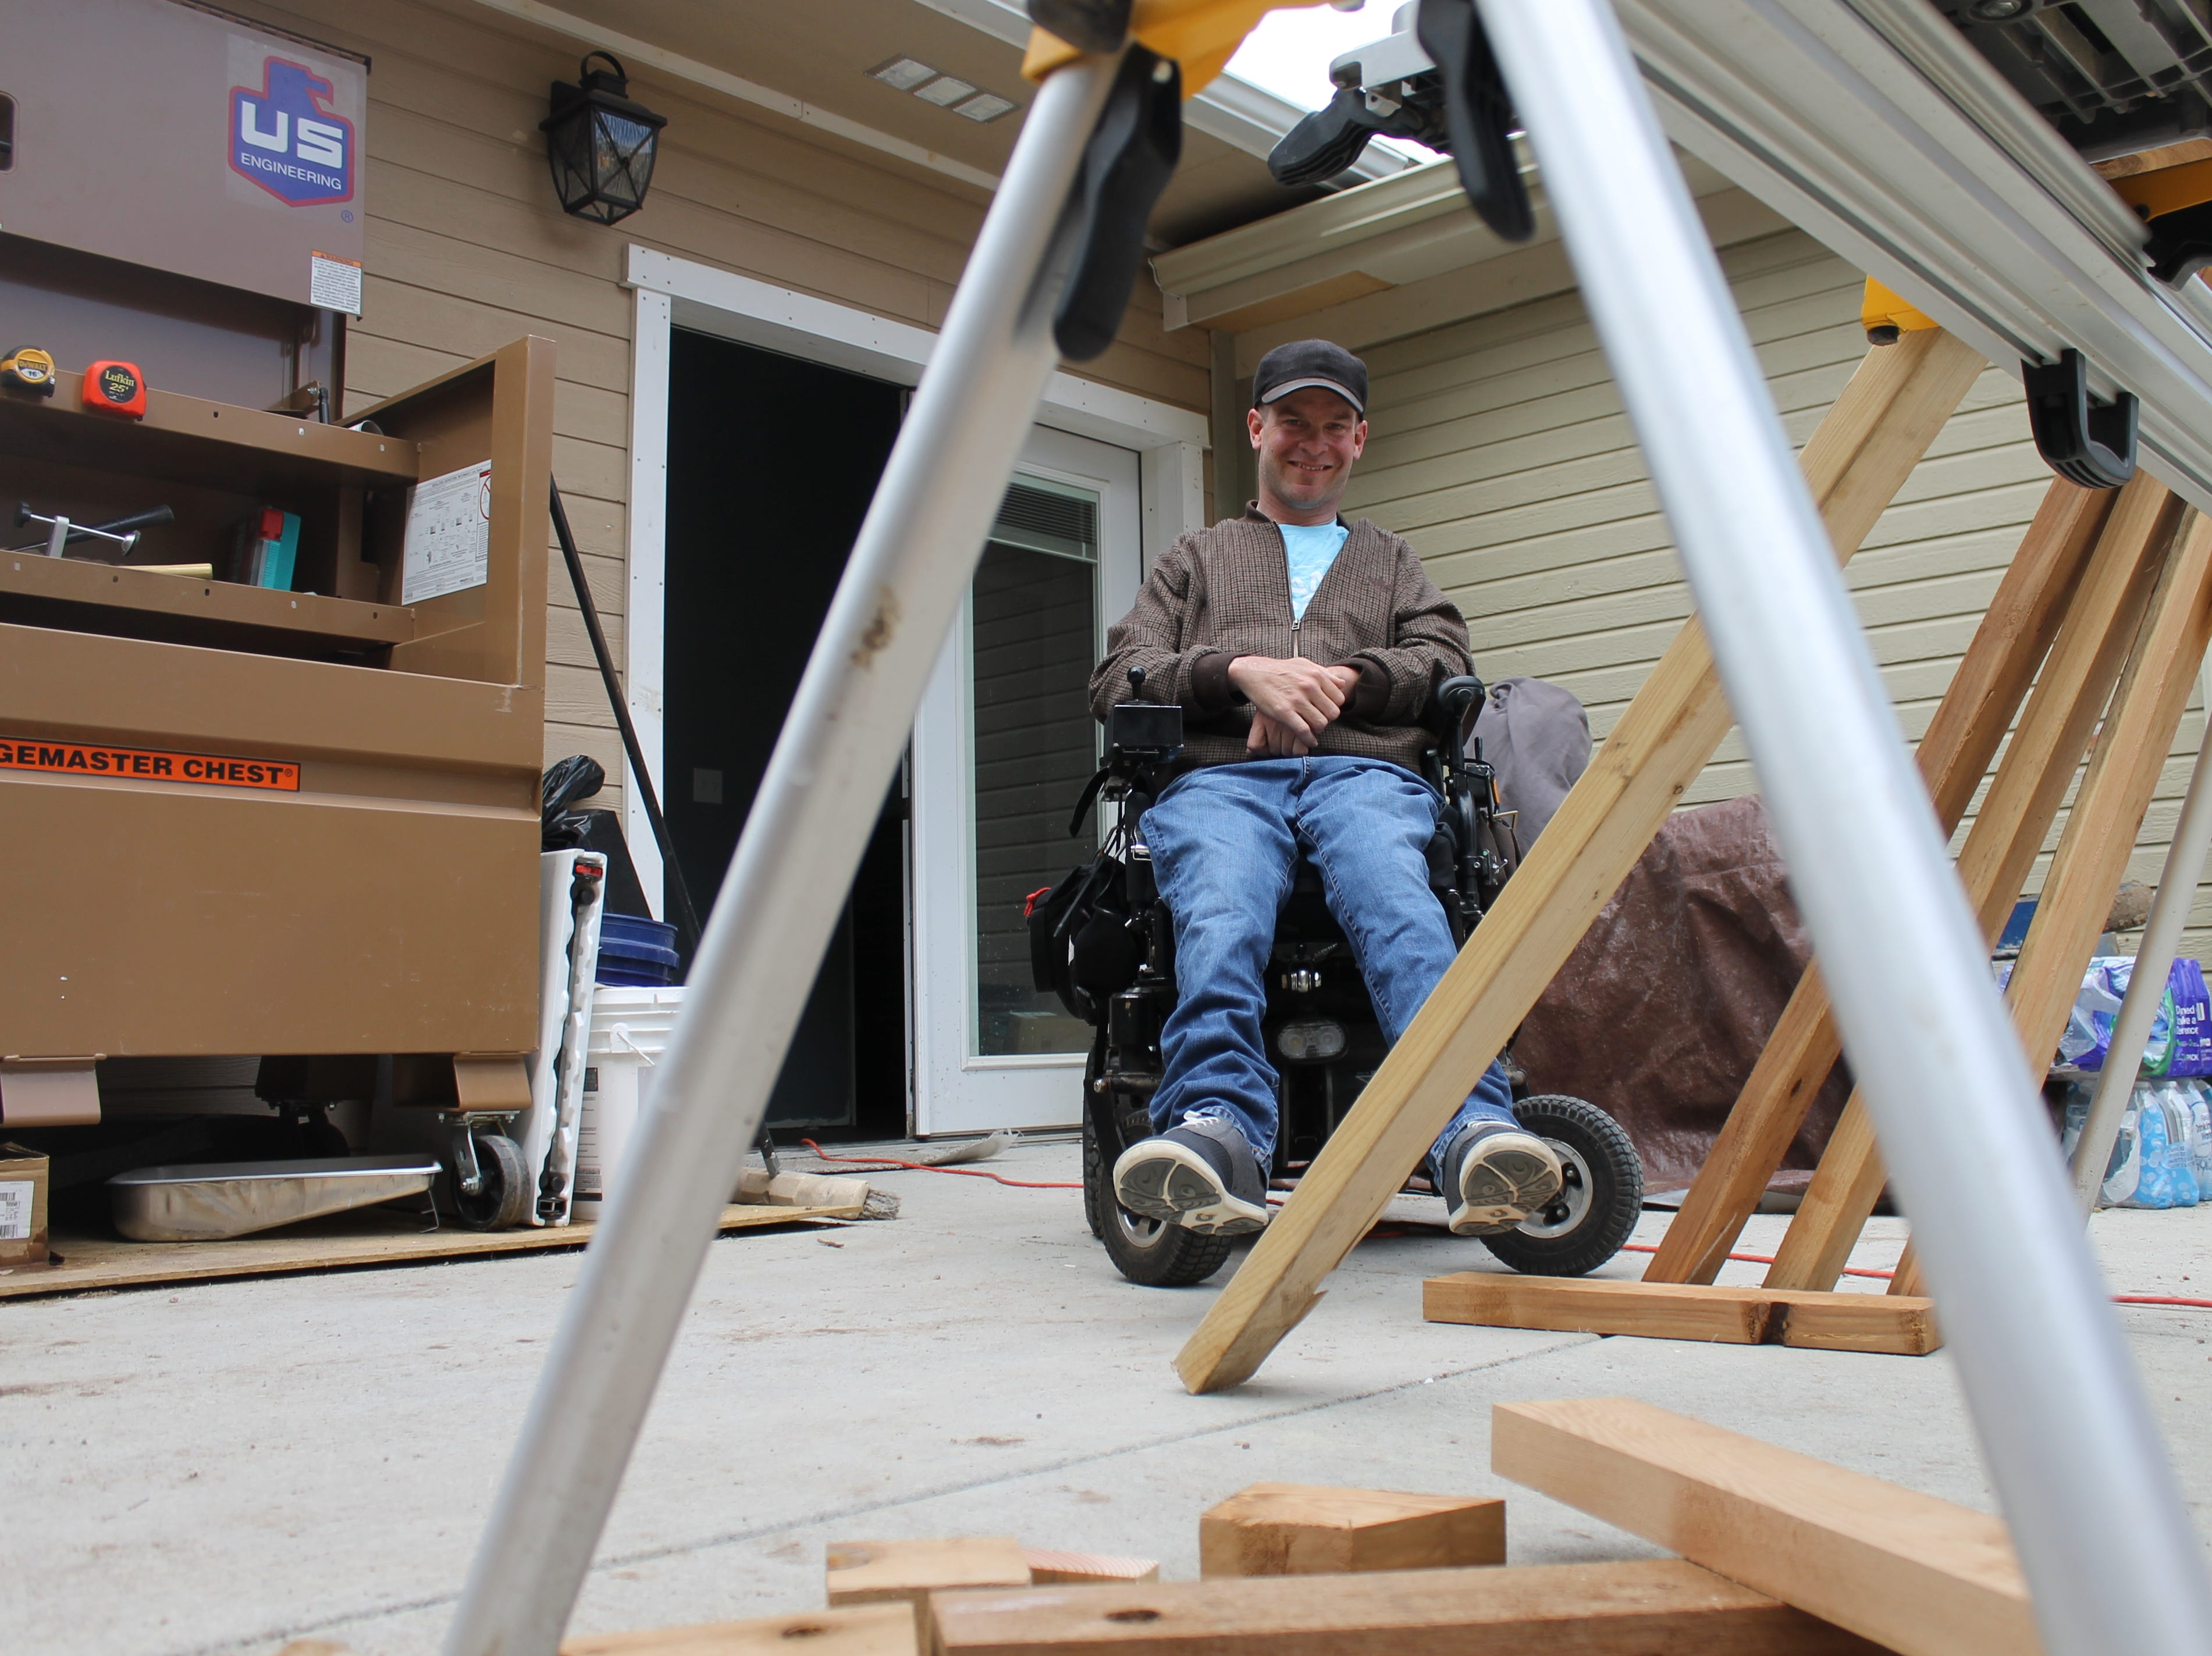 Terry Schlicting sits outside on his patio Saturday, April 27, 2019. Schlicting works at Colorado State University as an accommodations specialist. He said there's never a dull moment when working with college students.